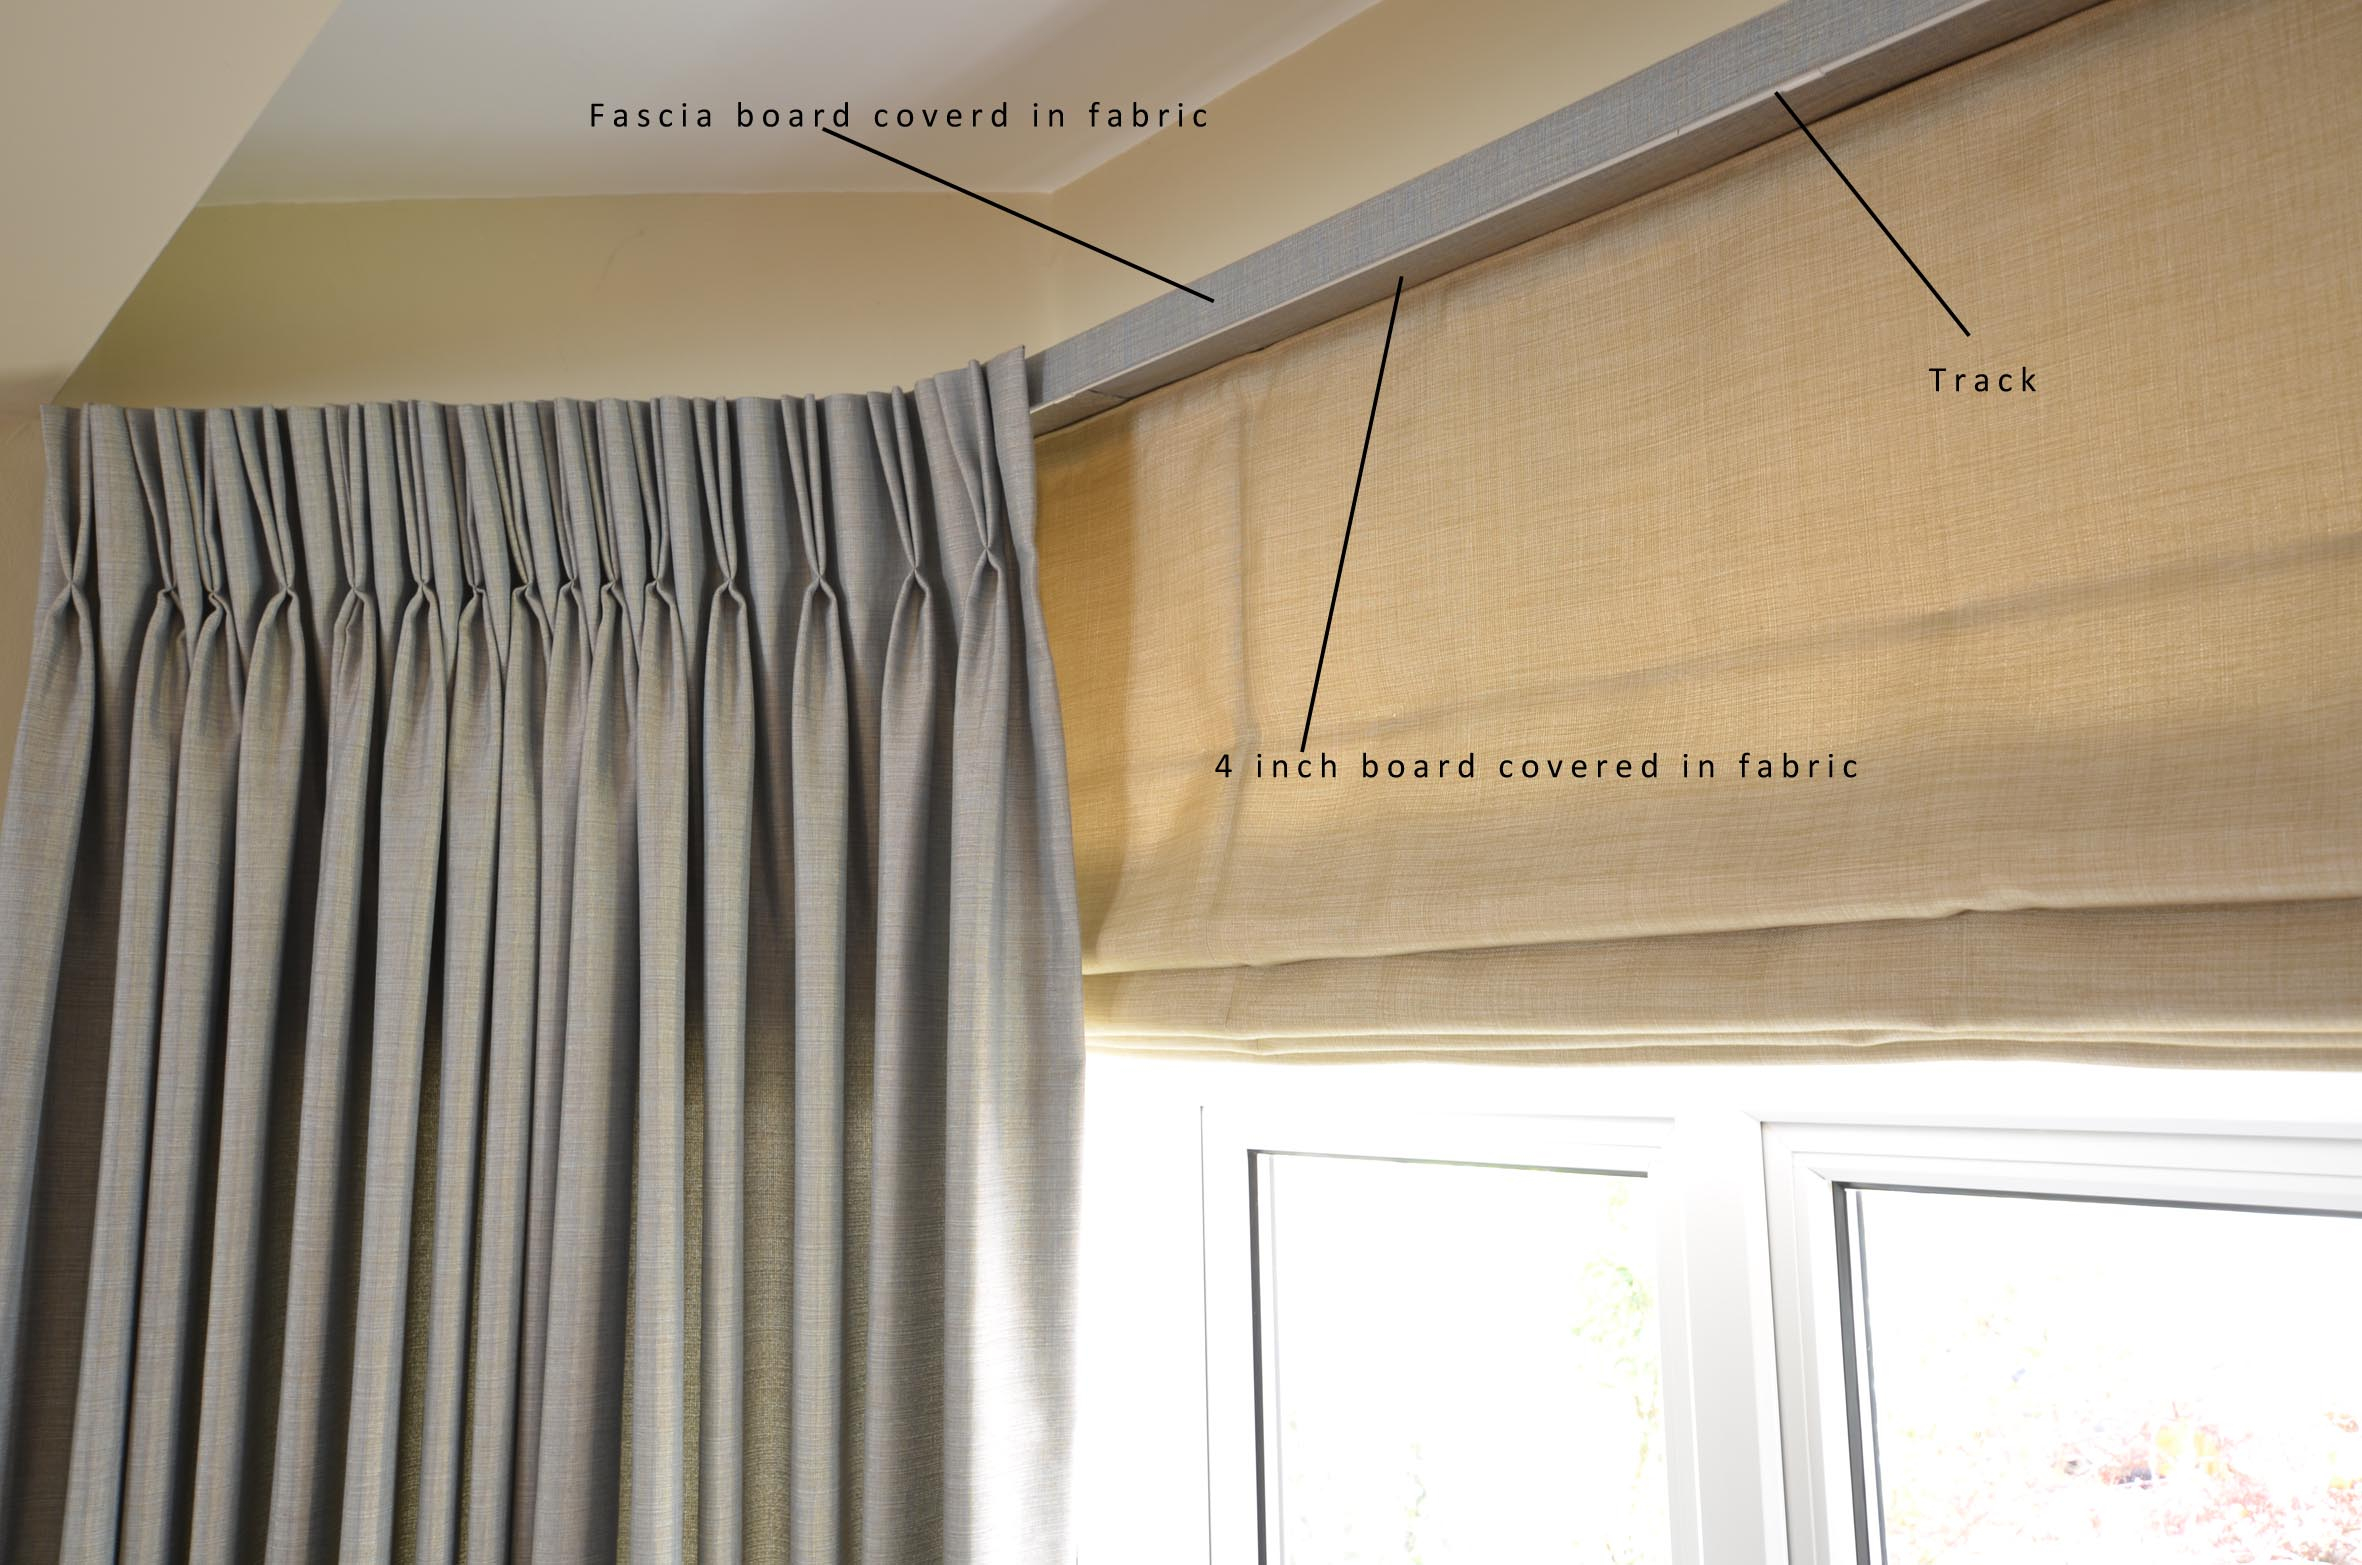 flexible x size mount mounted track use within easy curtains and curtain rods strong curved to ceiling